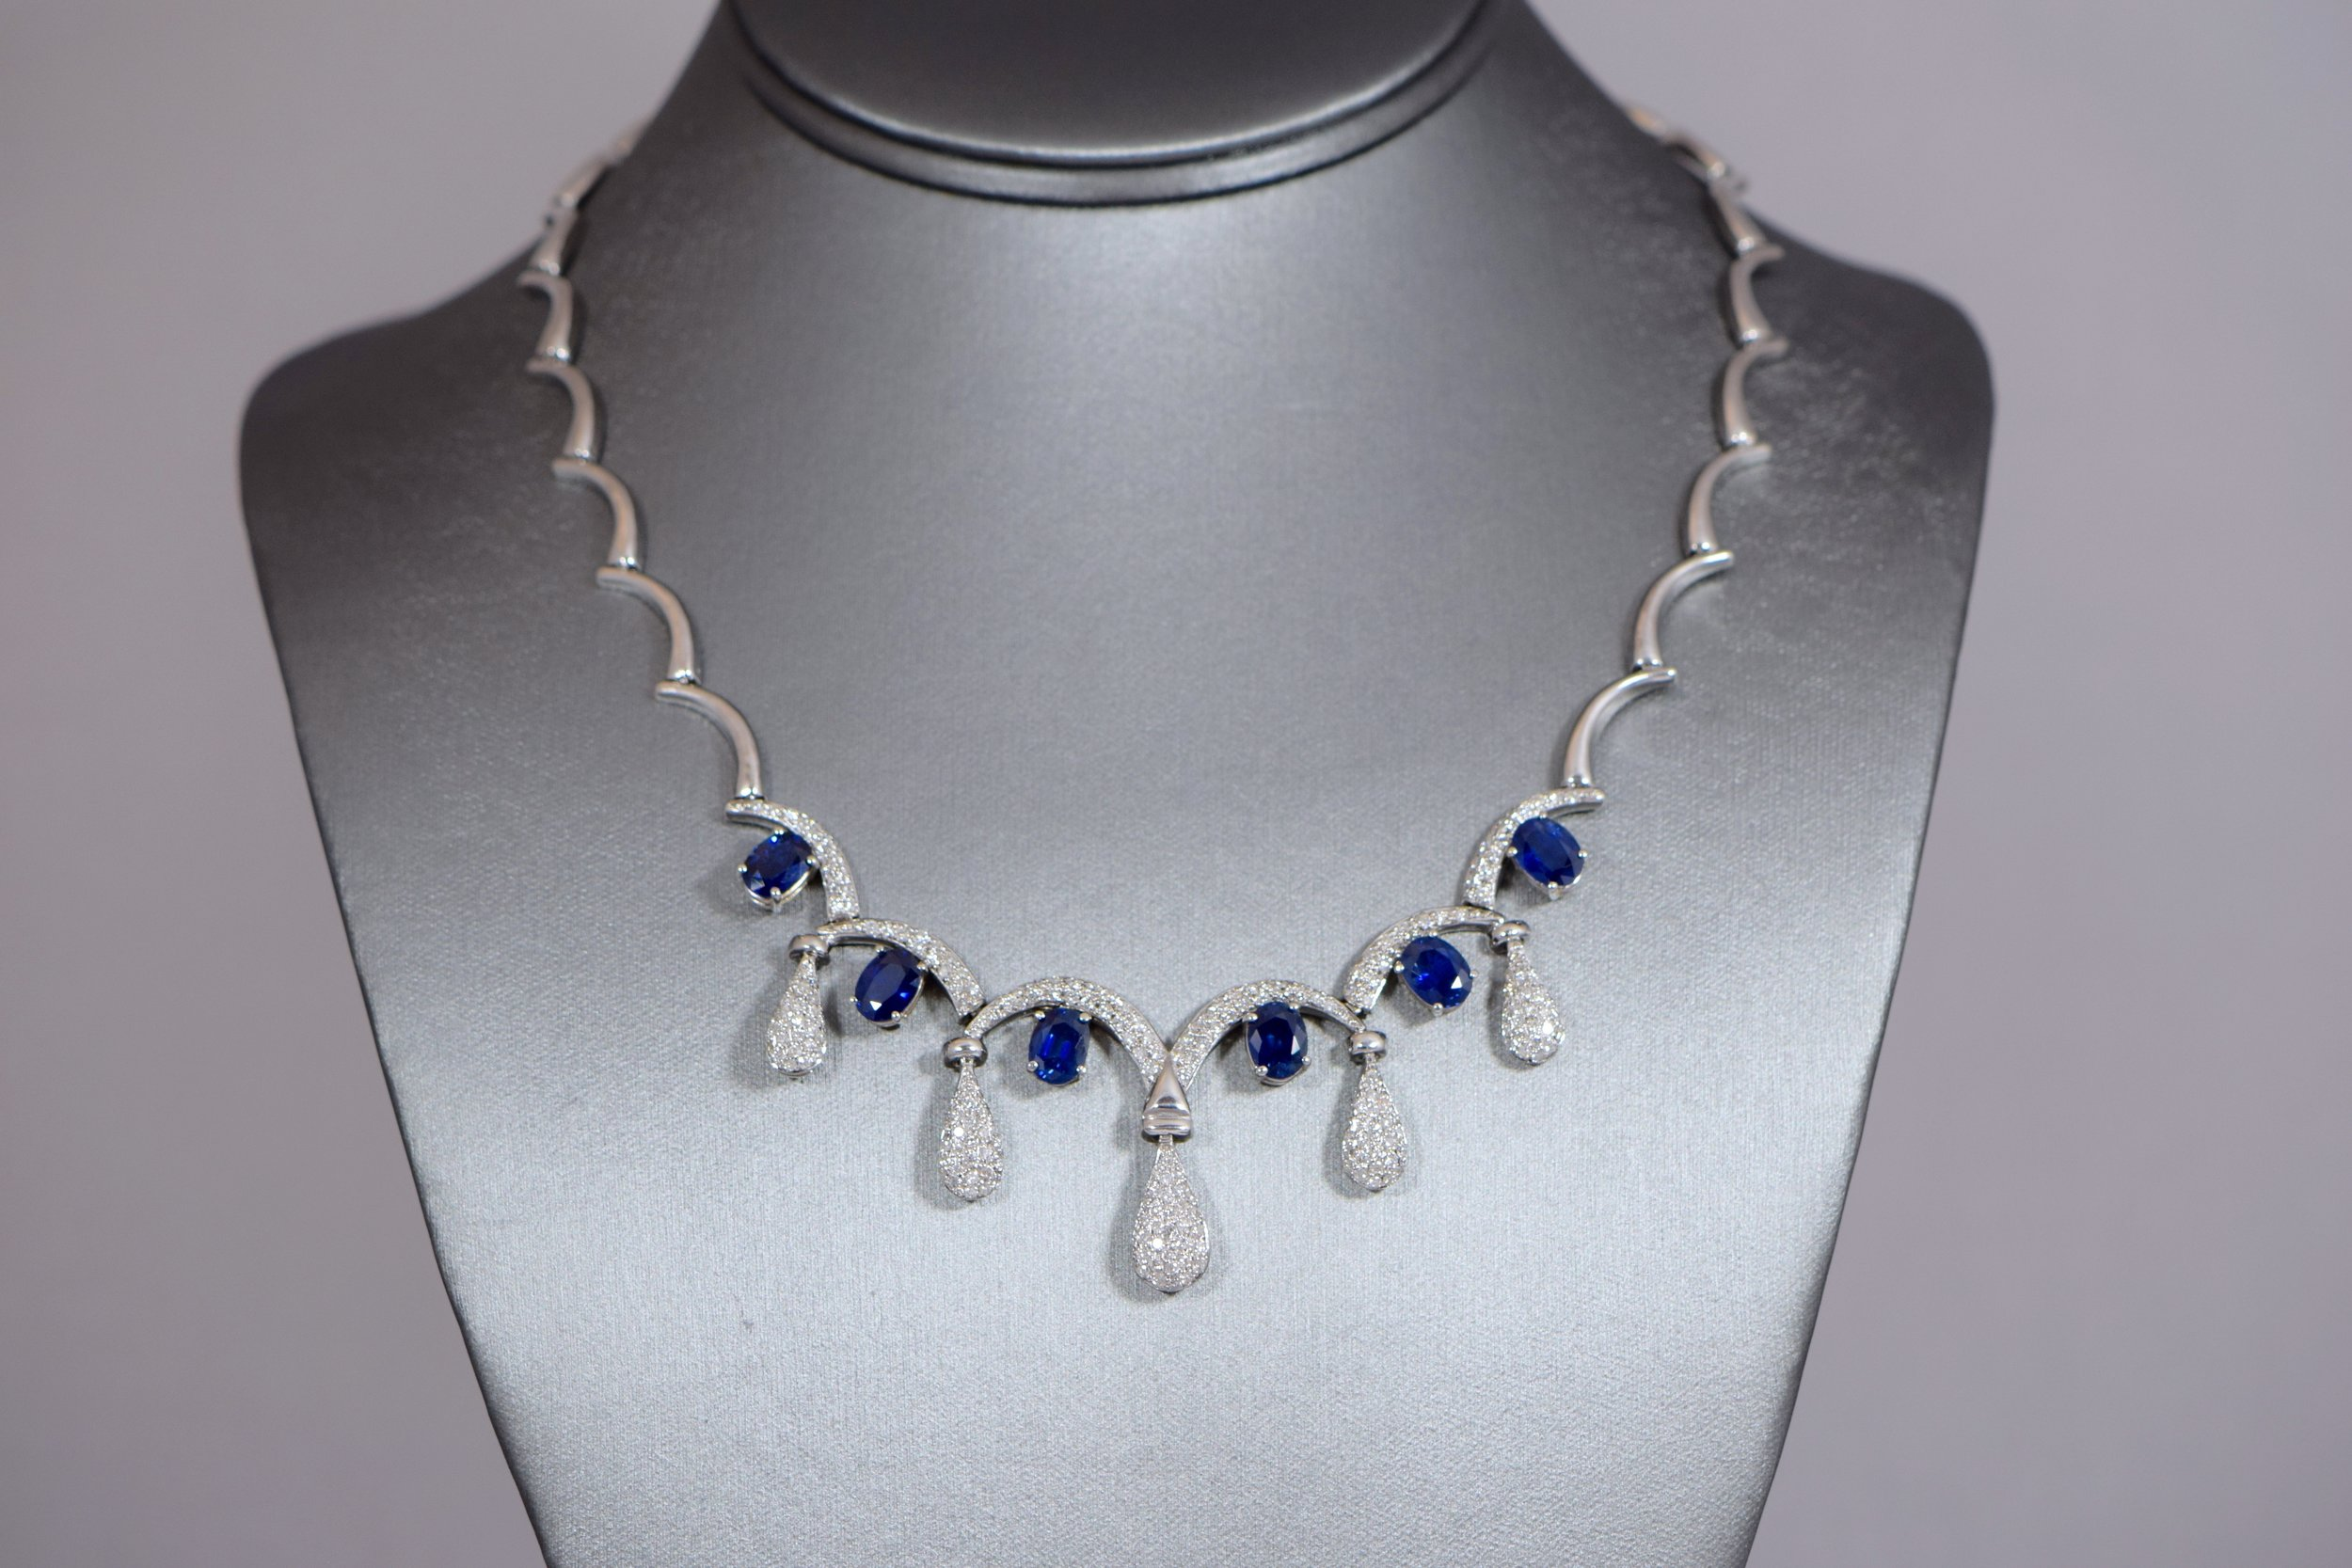 Sapphire and diamond statement necklace